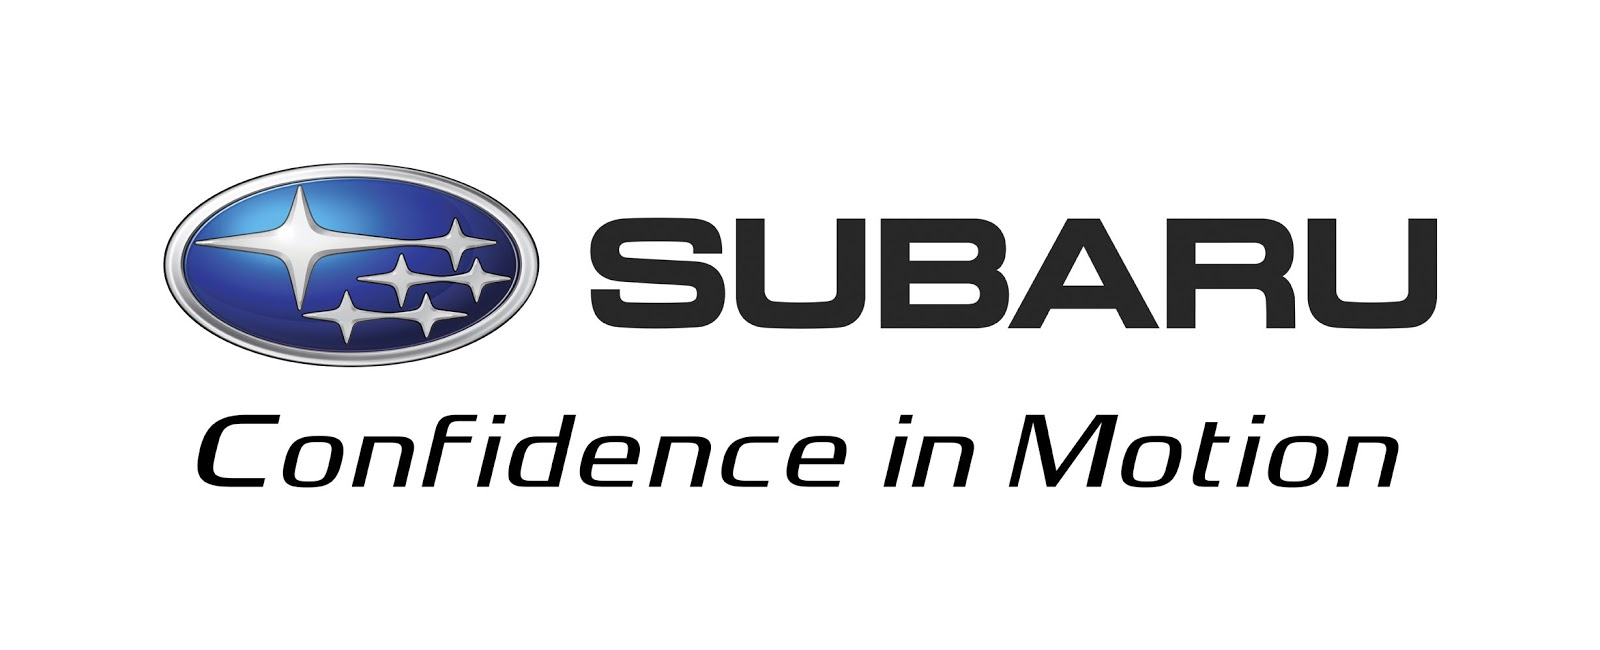 Michigan Subaru Ownership Comes With So Many Benefits